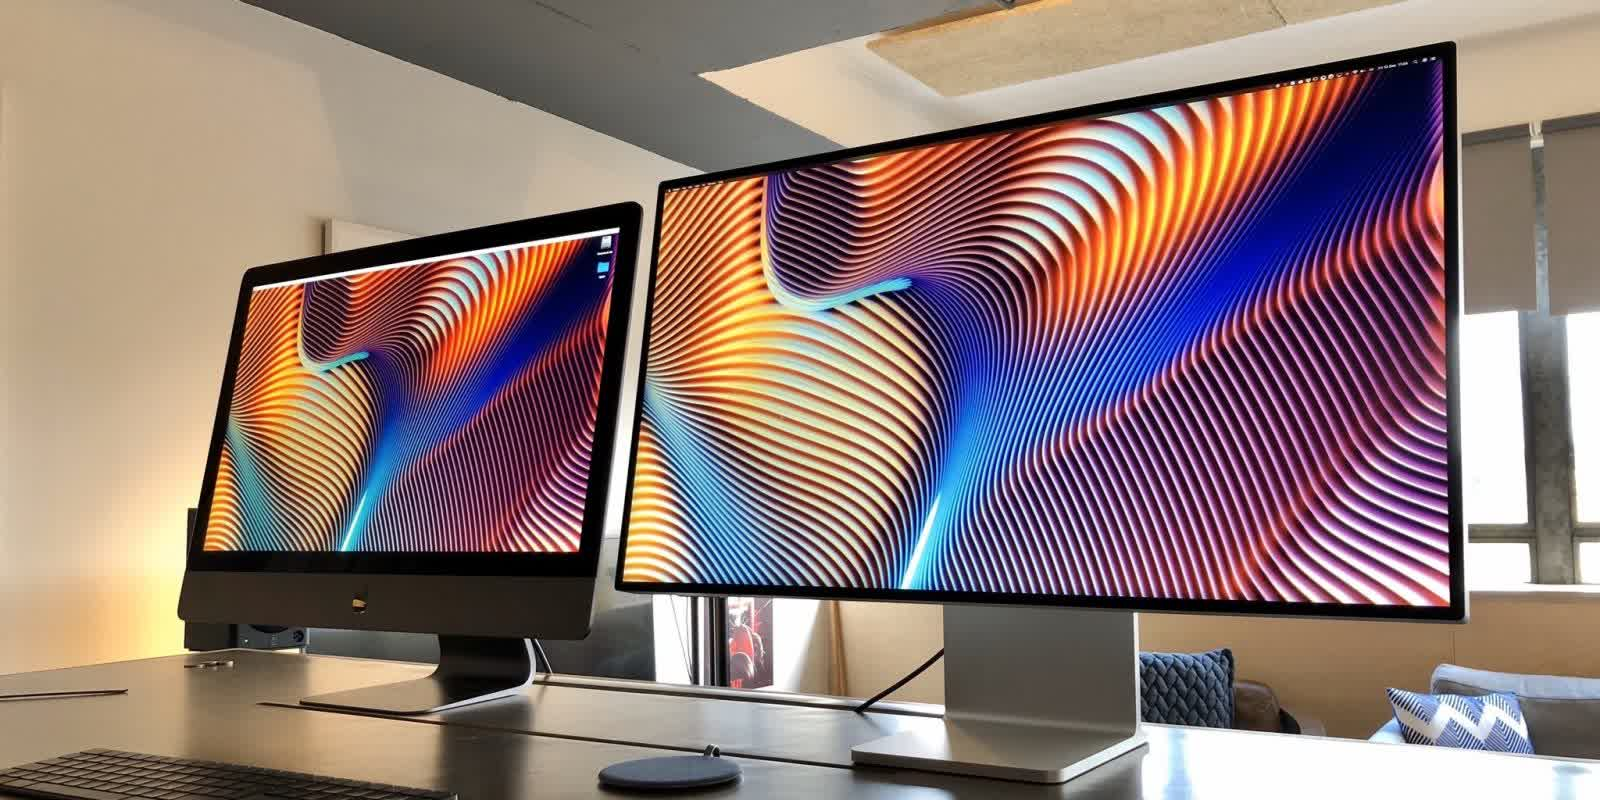 Apple said to be testing a new external display with a dedicated A13 Bionic SoC